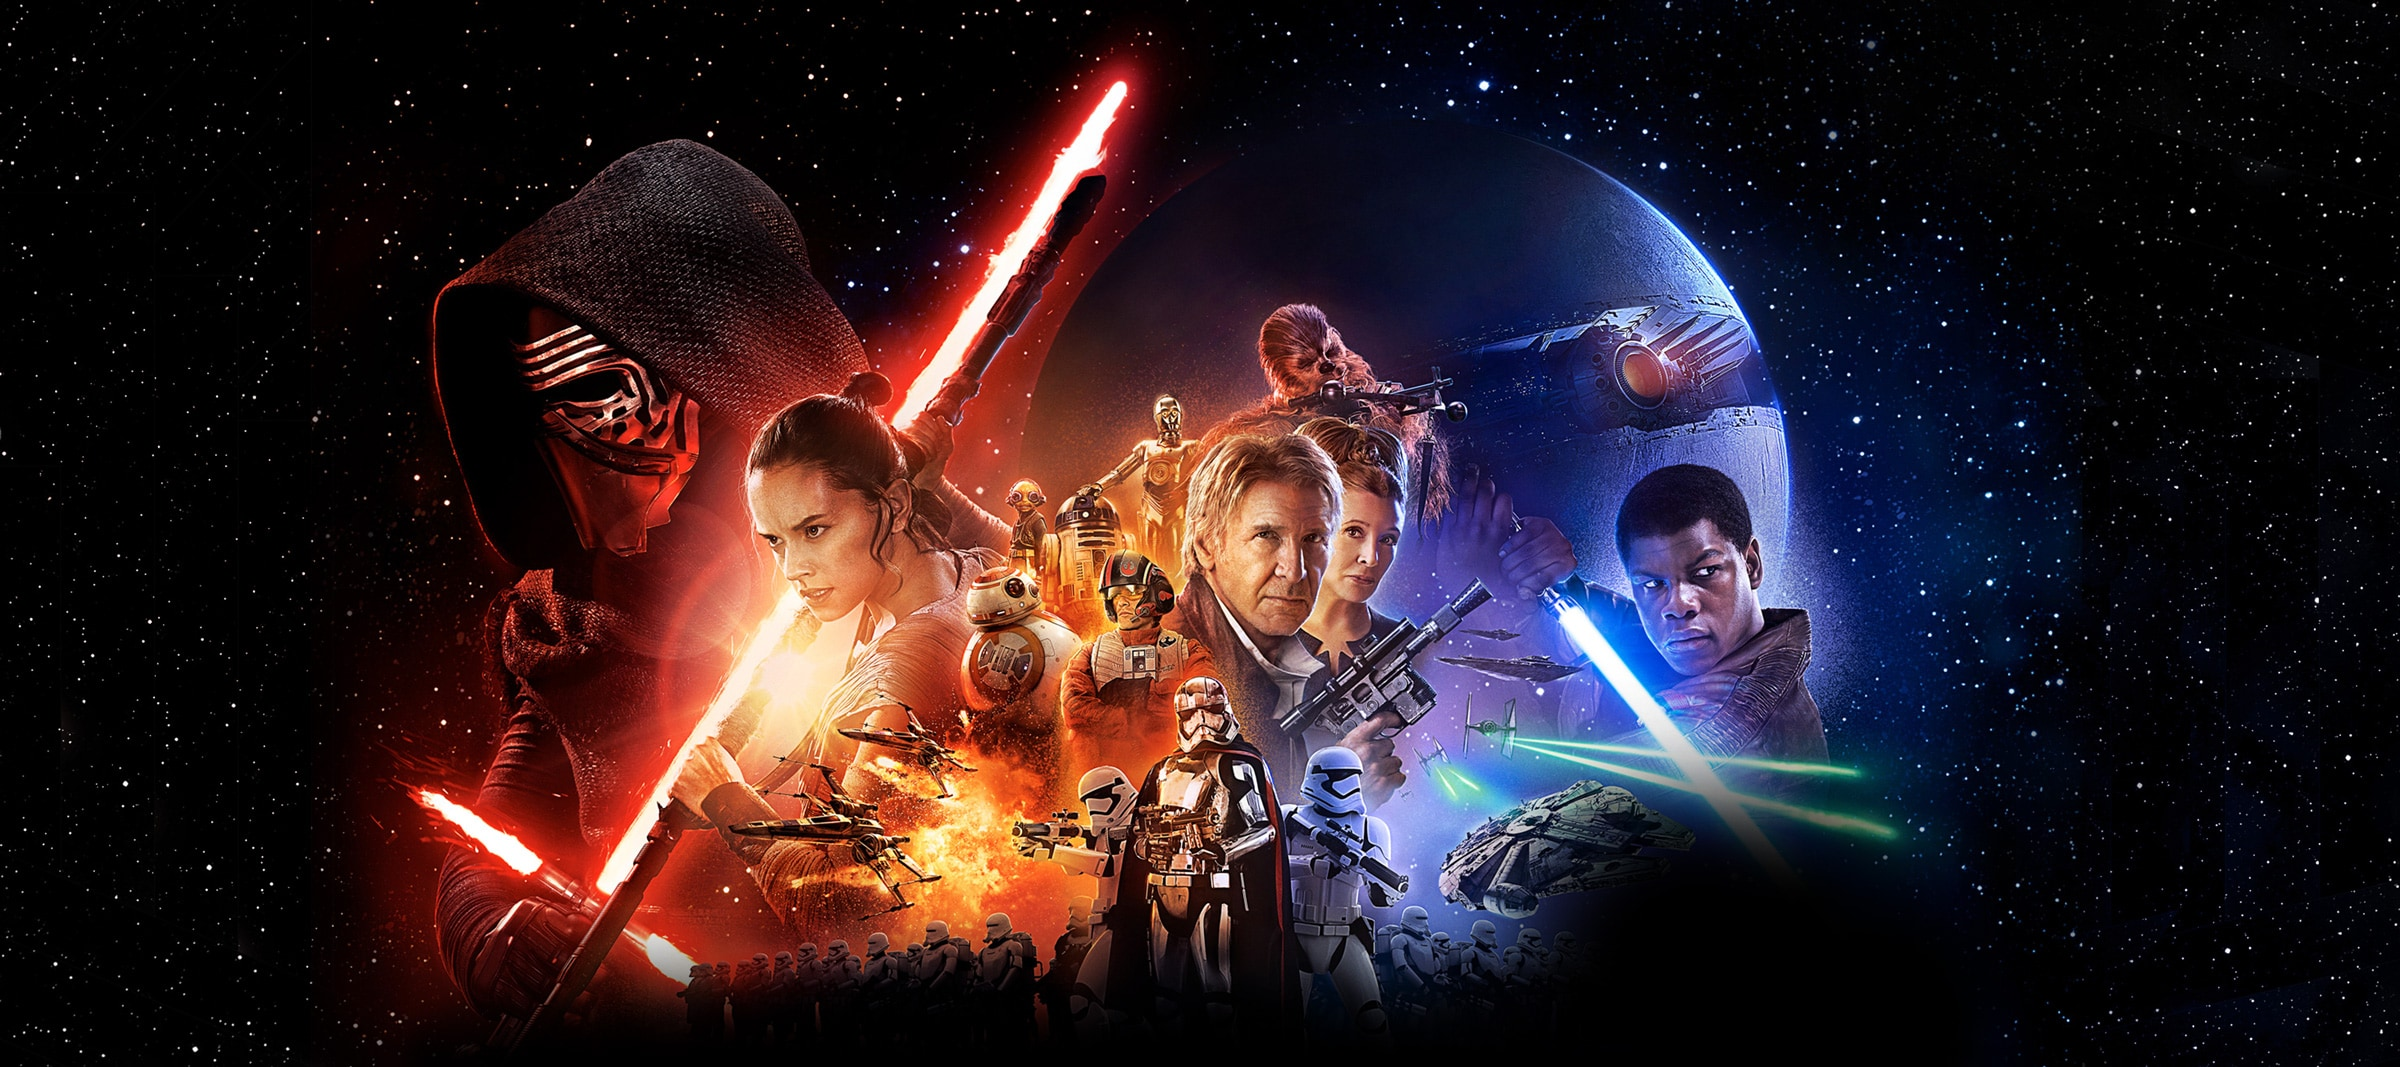 Star Wars: The Force Awakens (English) english full movie download